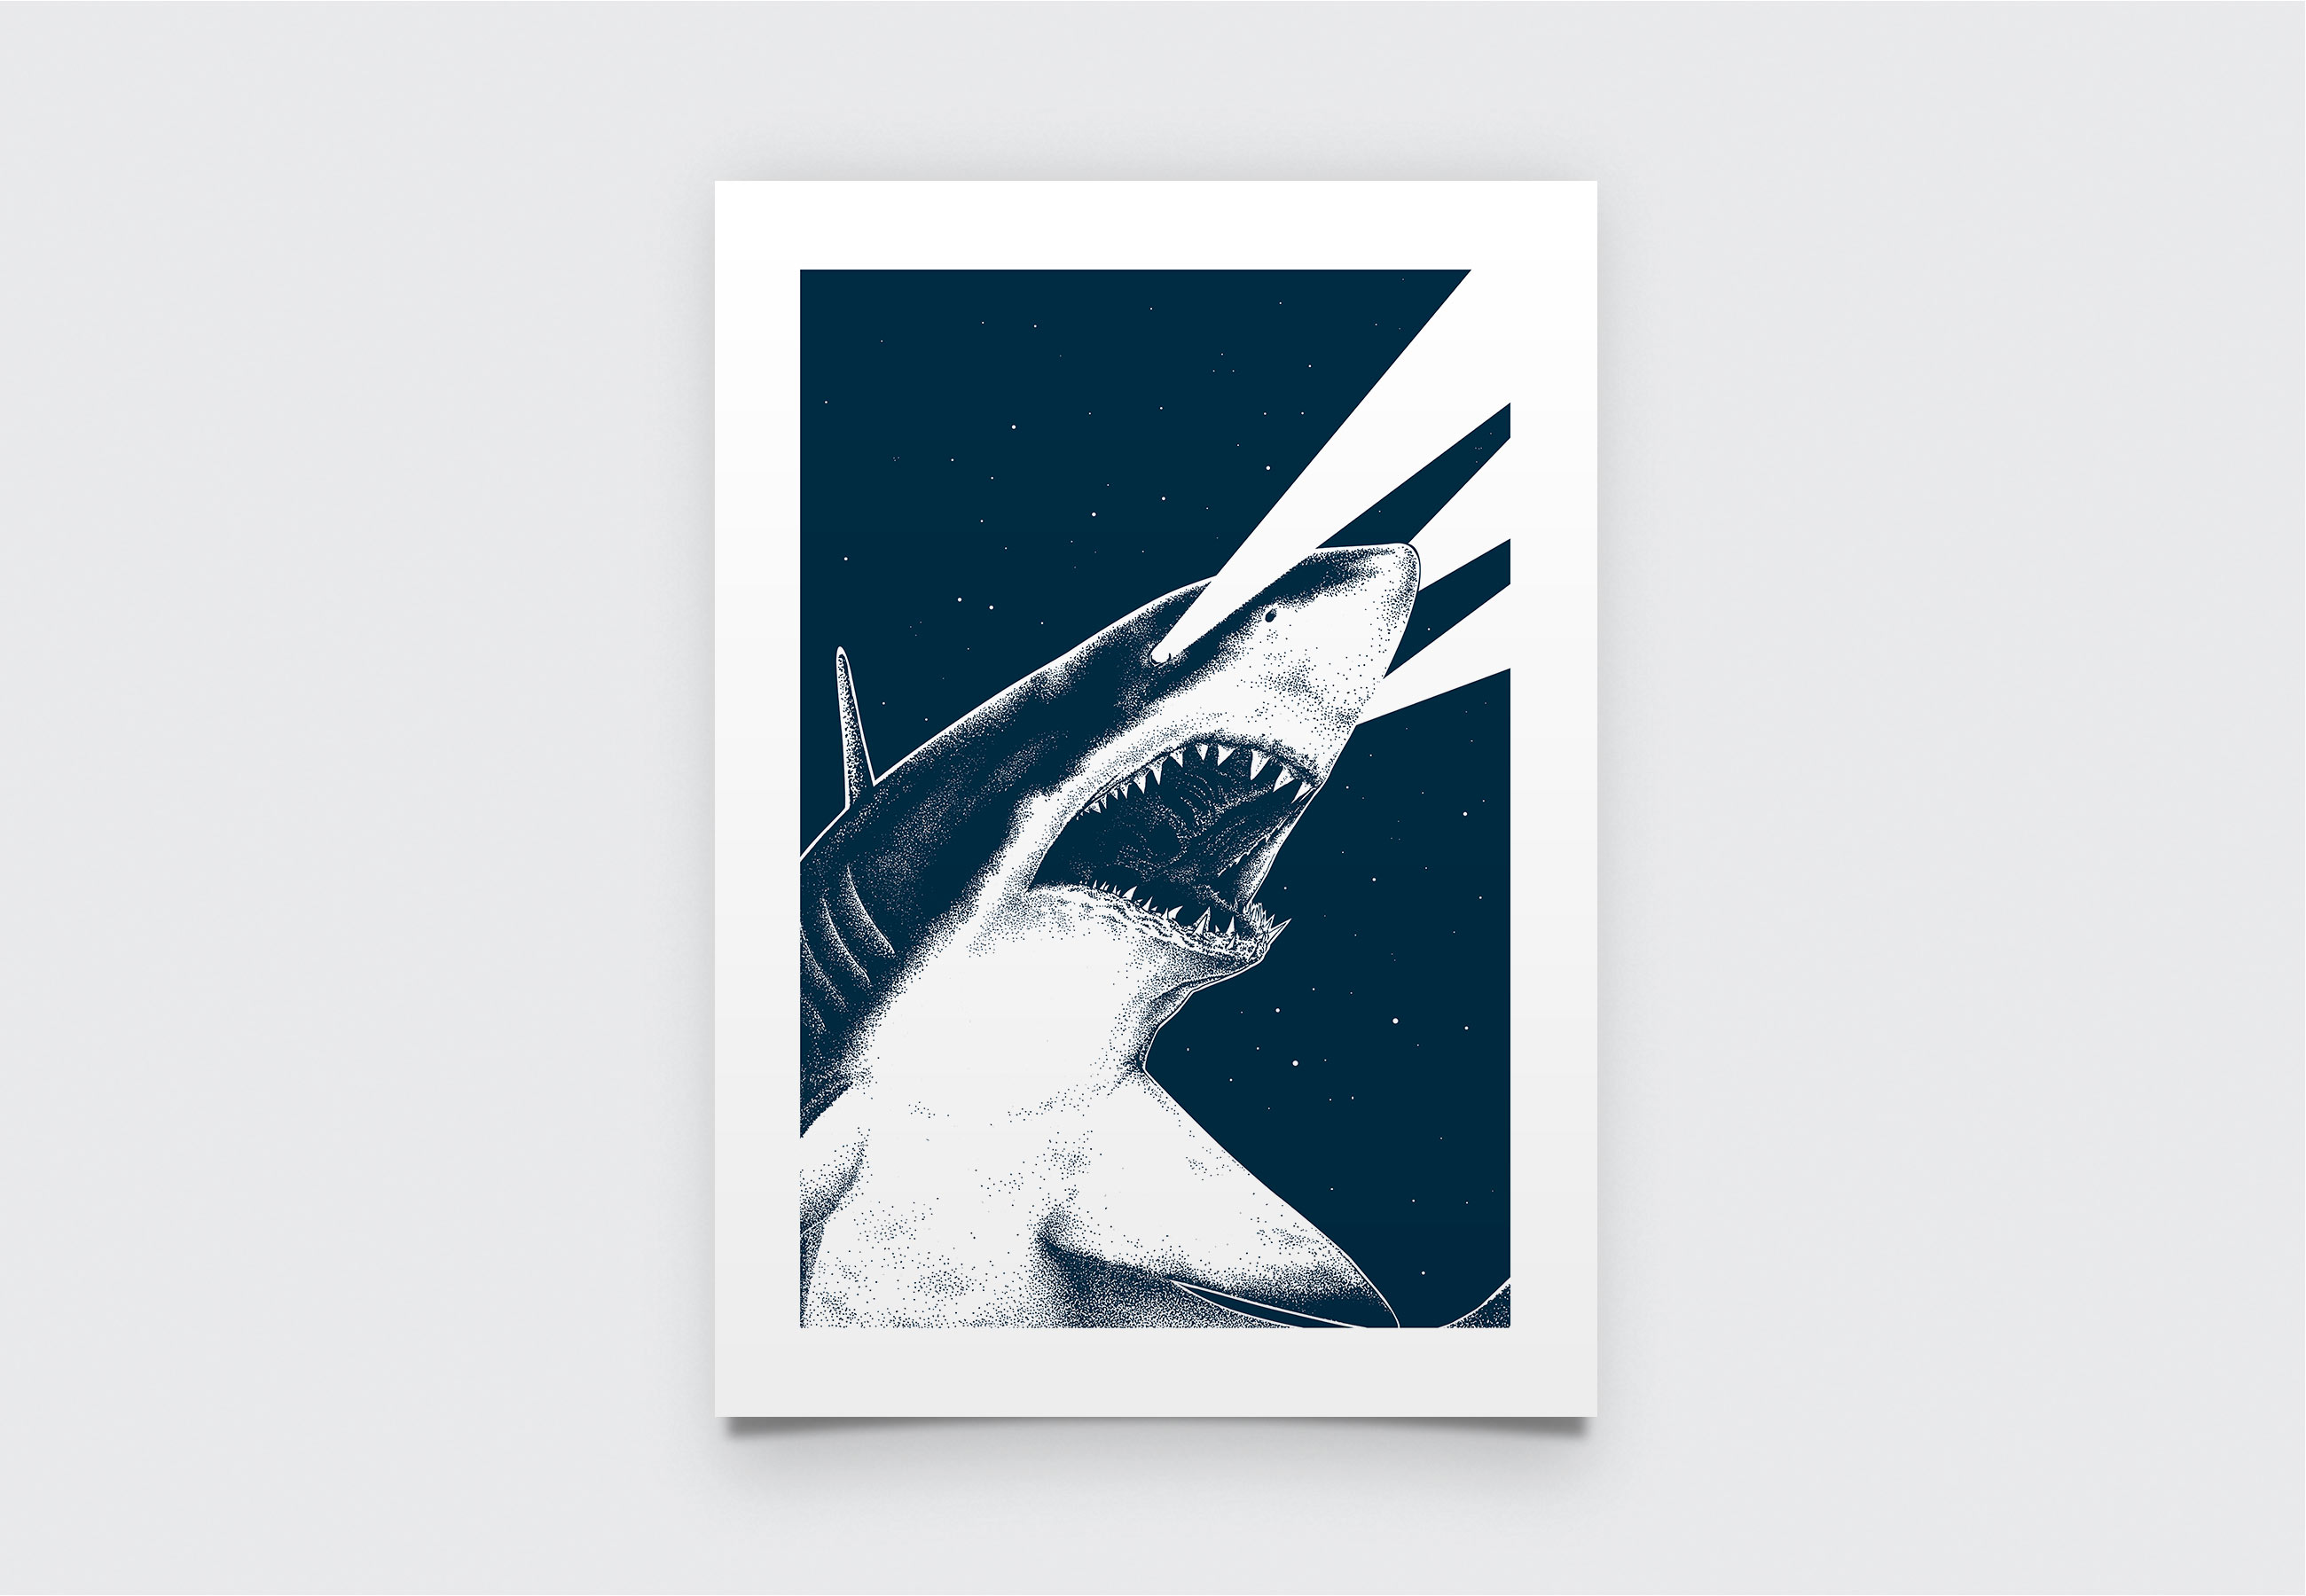 3rd_eye_creatures_shark_parallele_graphique